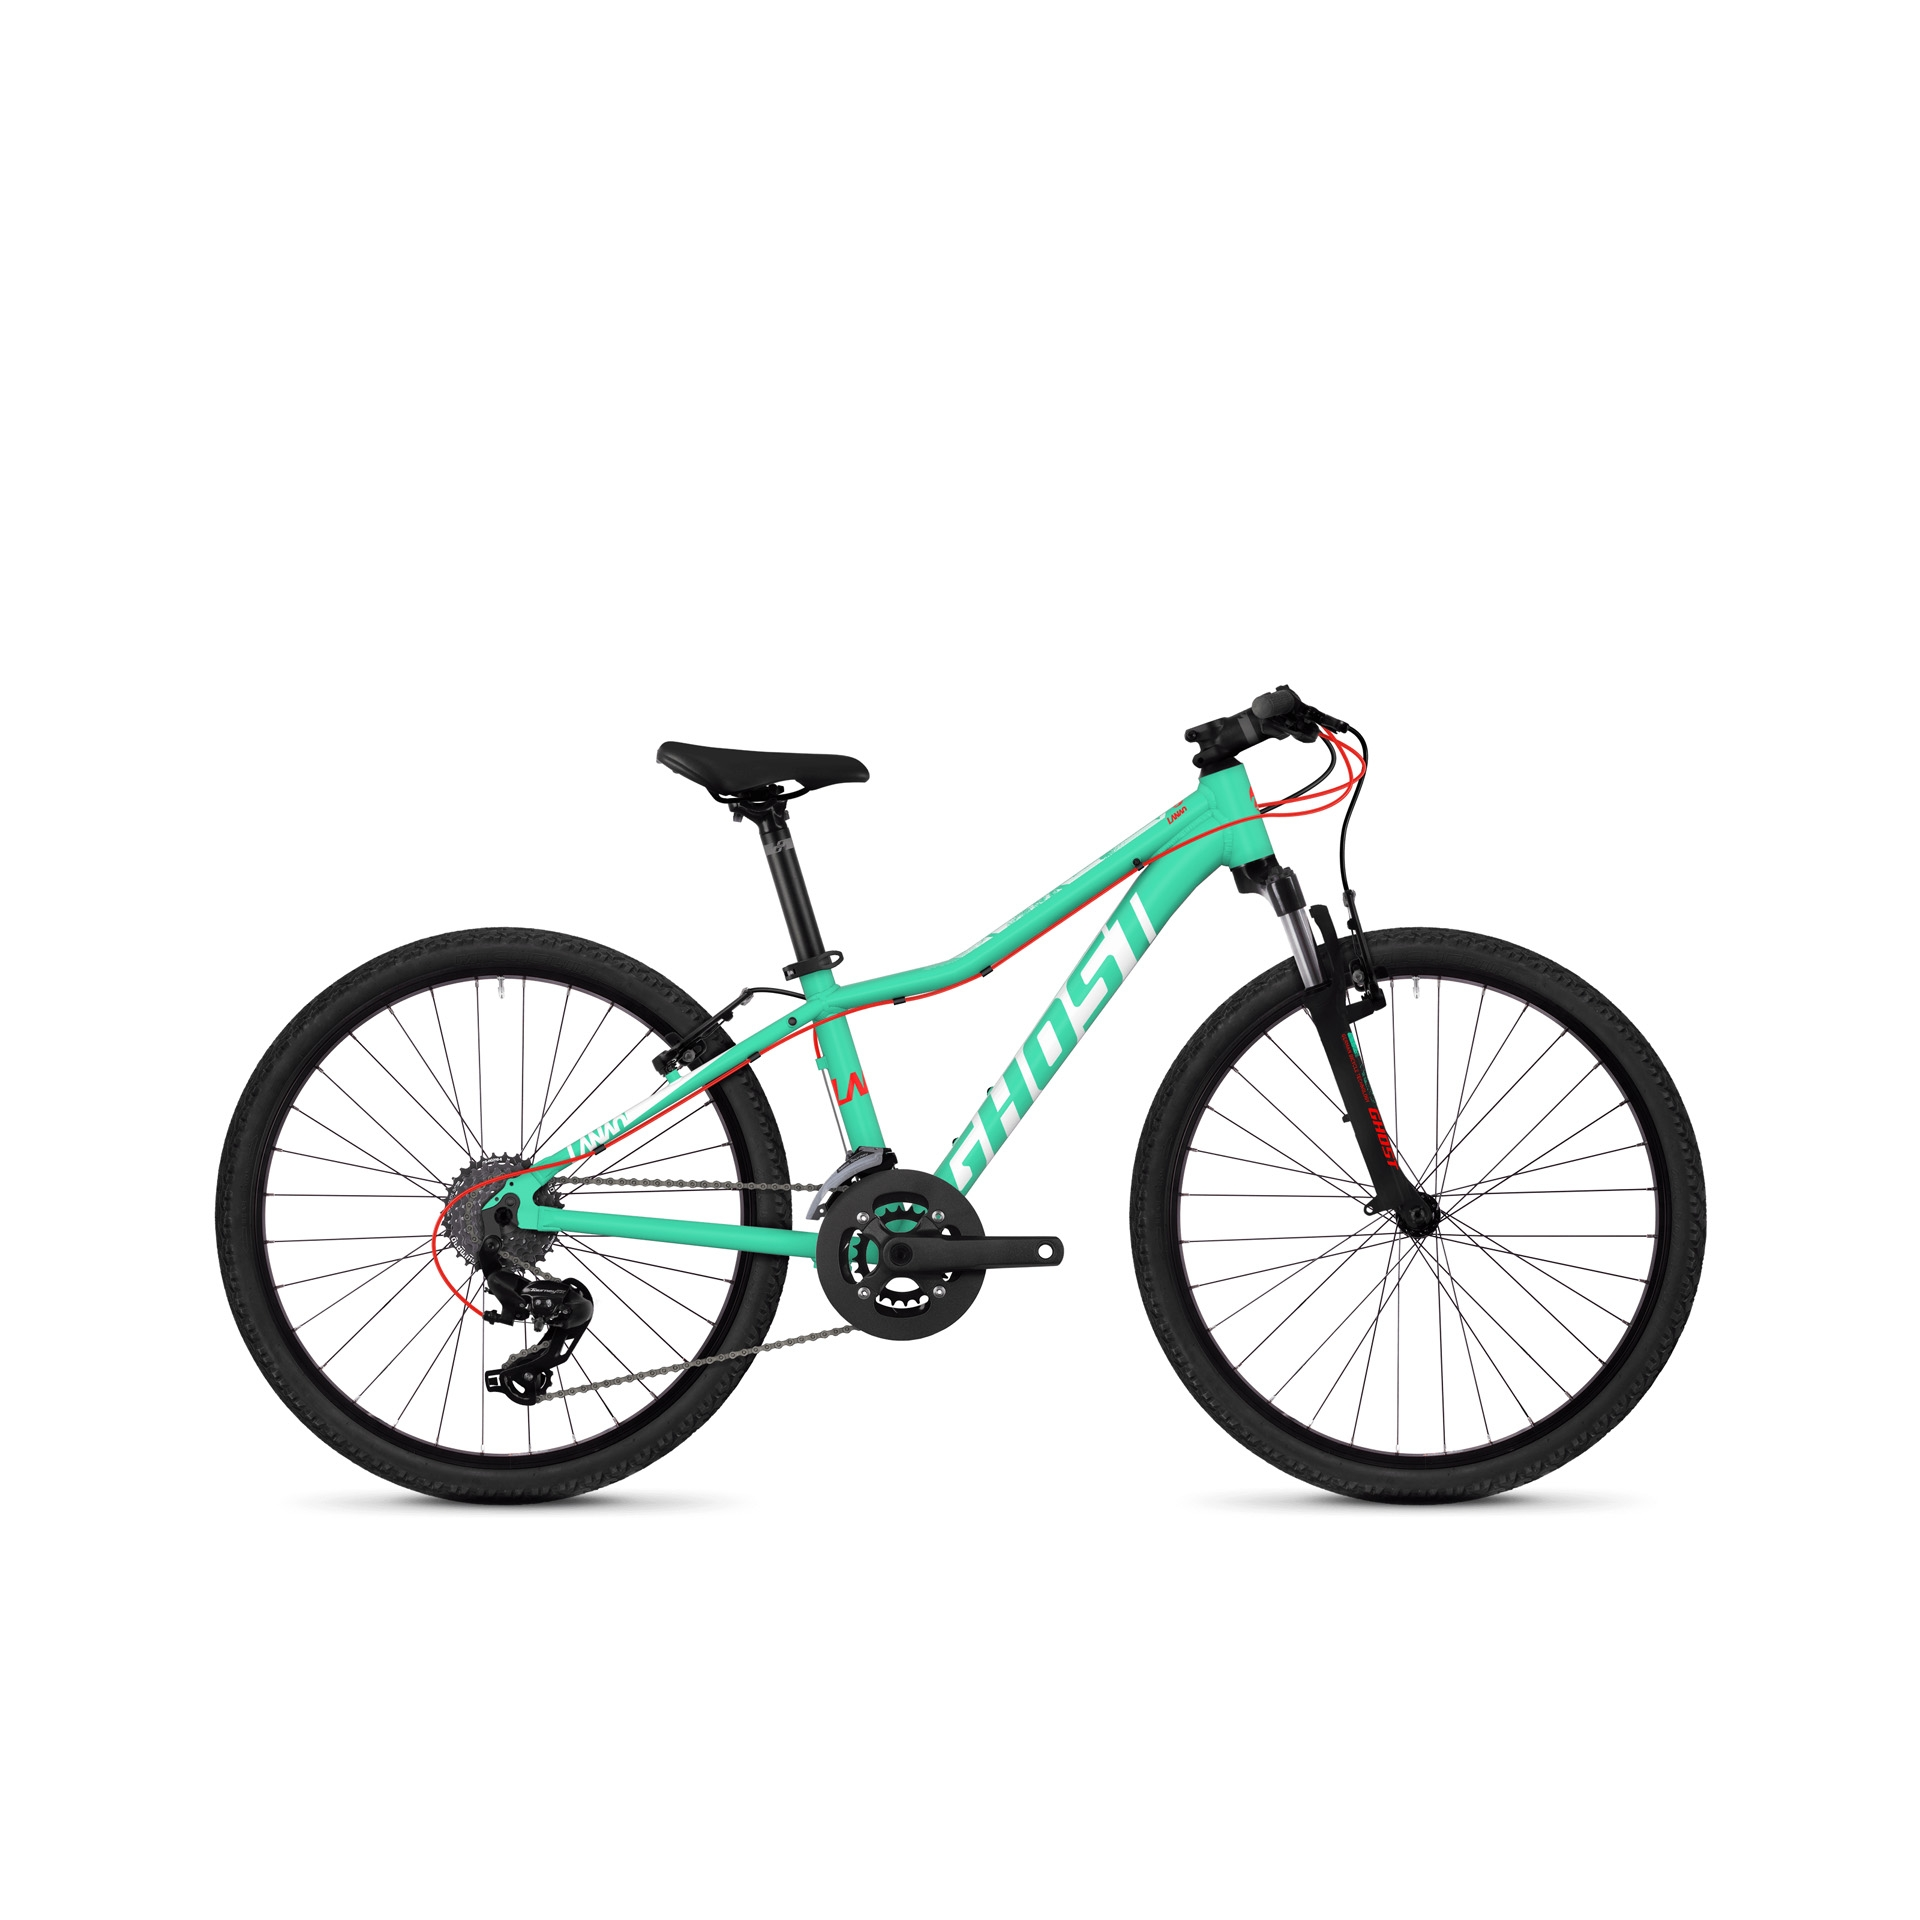 VTT semi-rigide Ghost Lanao Kid 2.4 24 Bleu/Rouge/Blanc